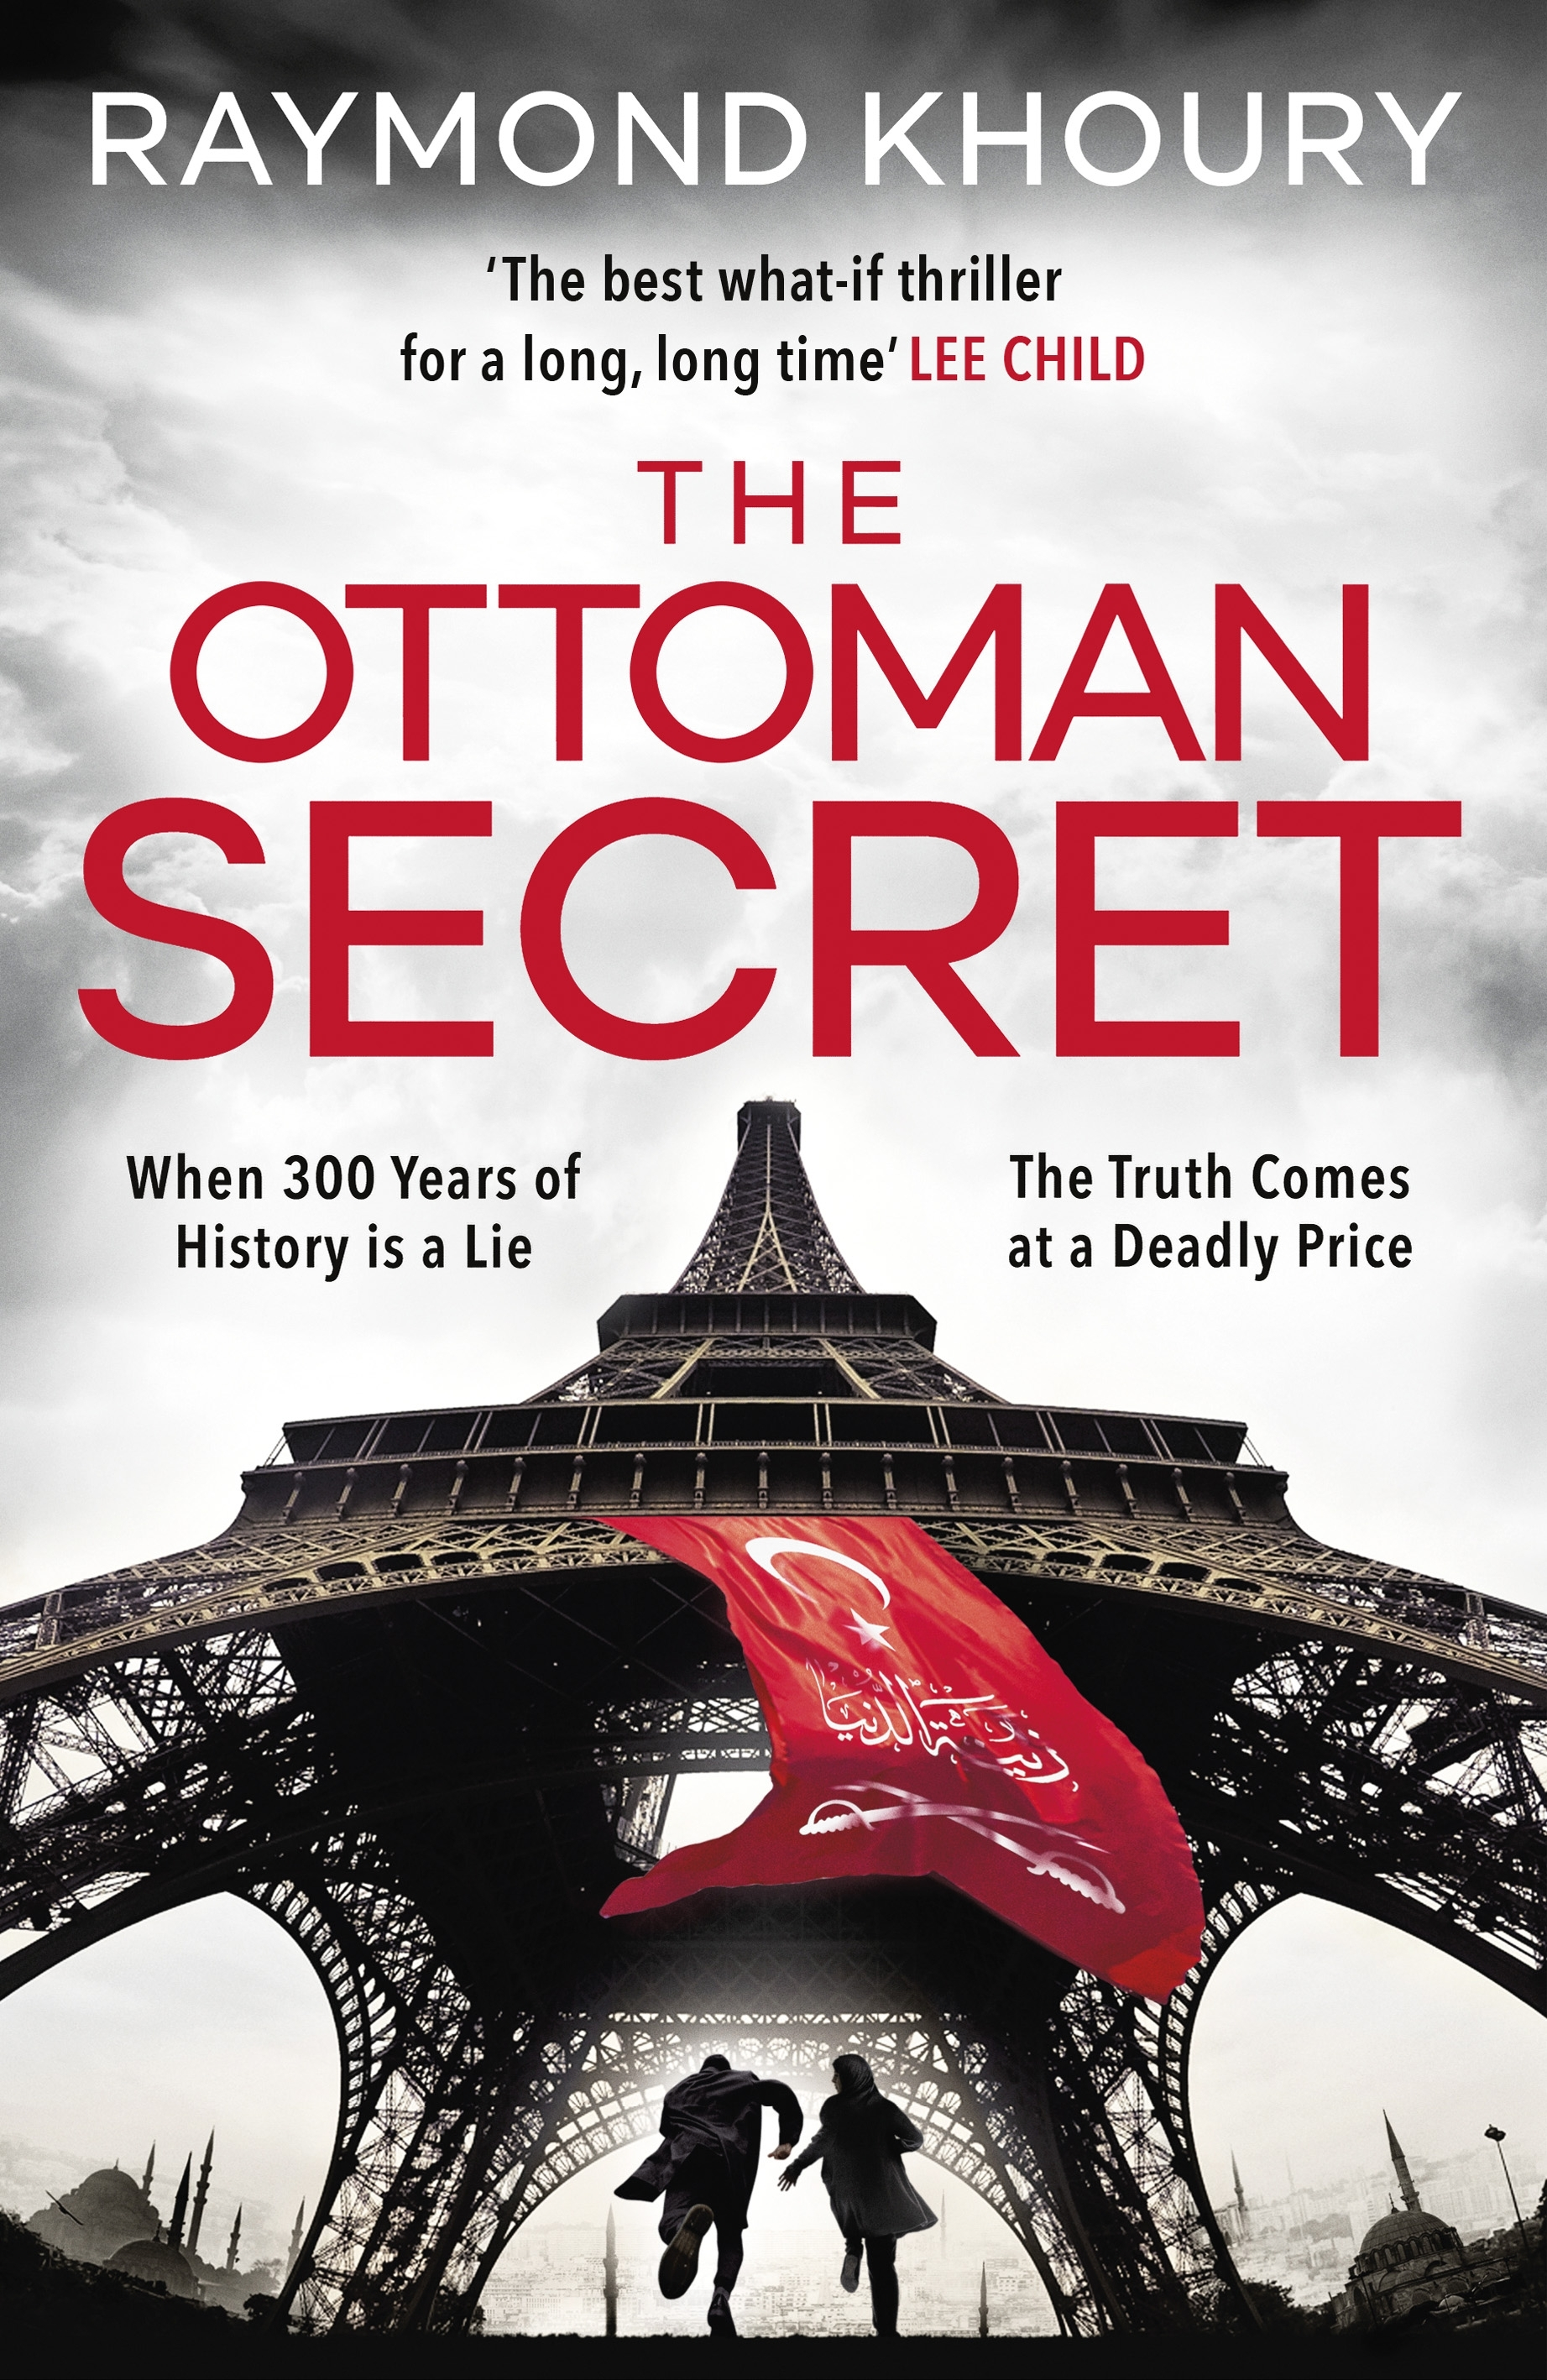 The Ottoman Secret by Raymond Khoury